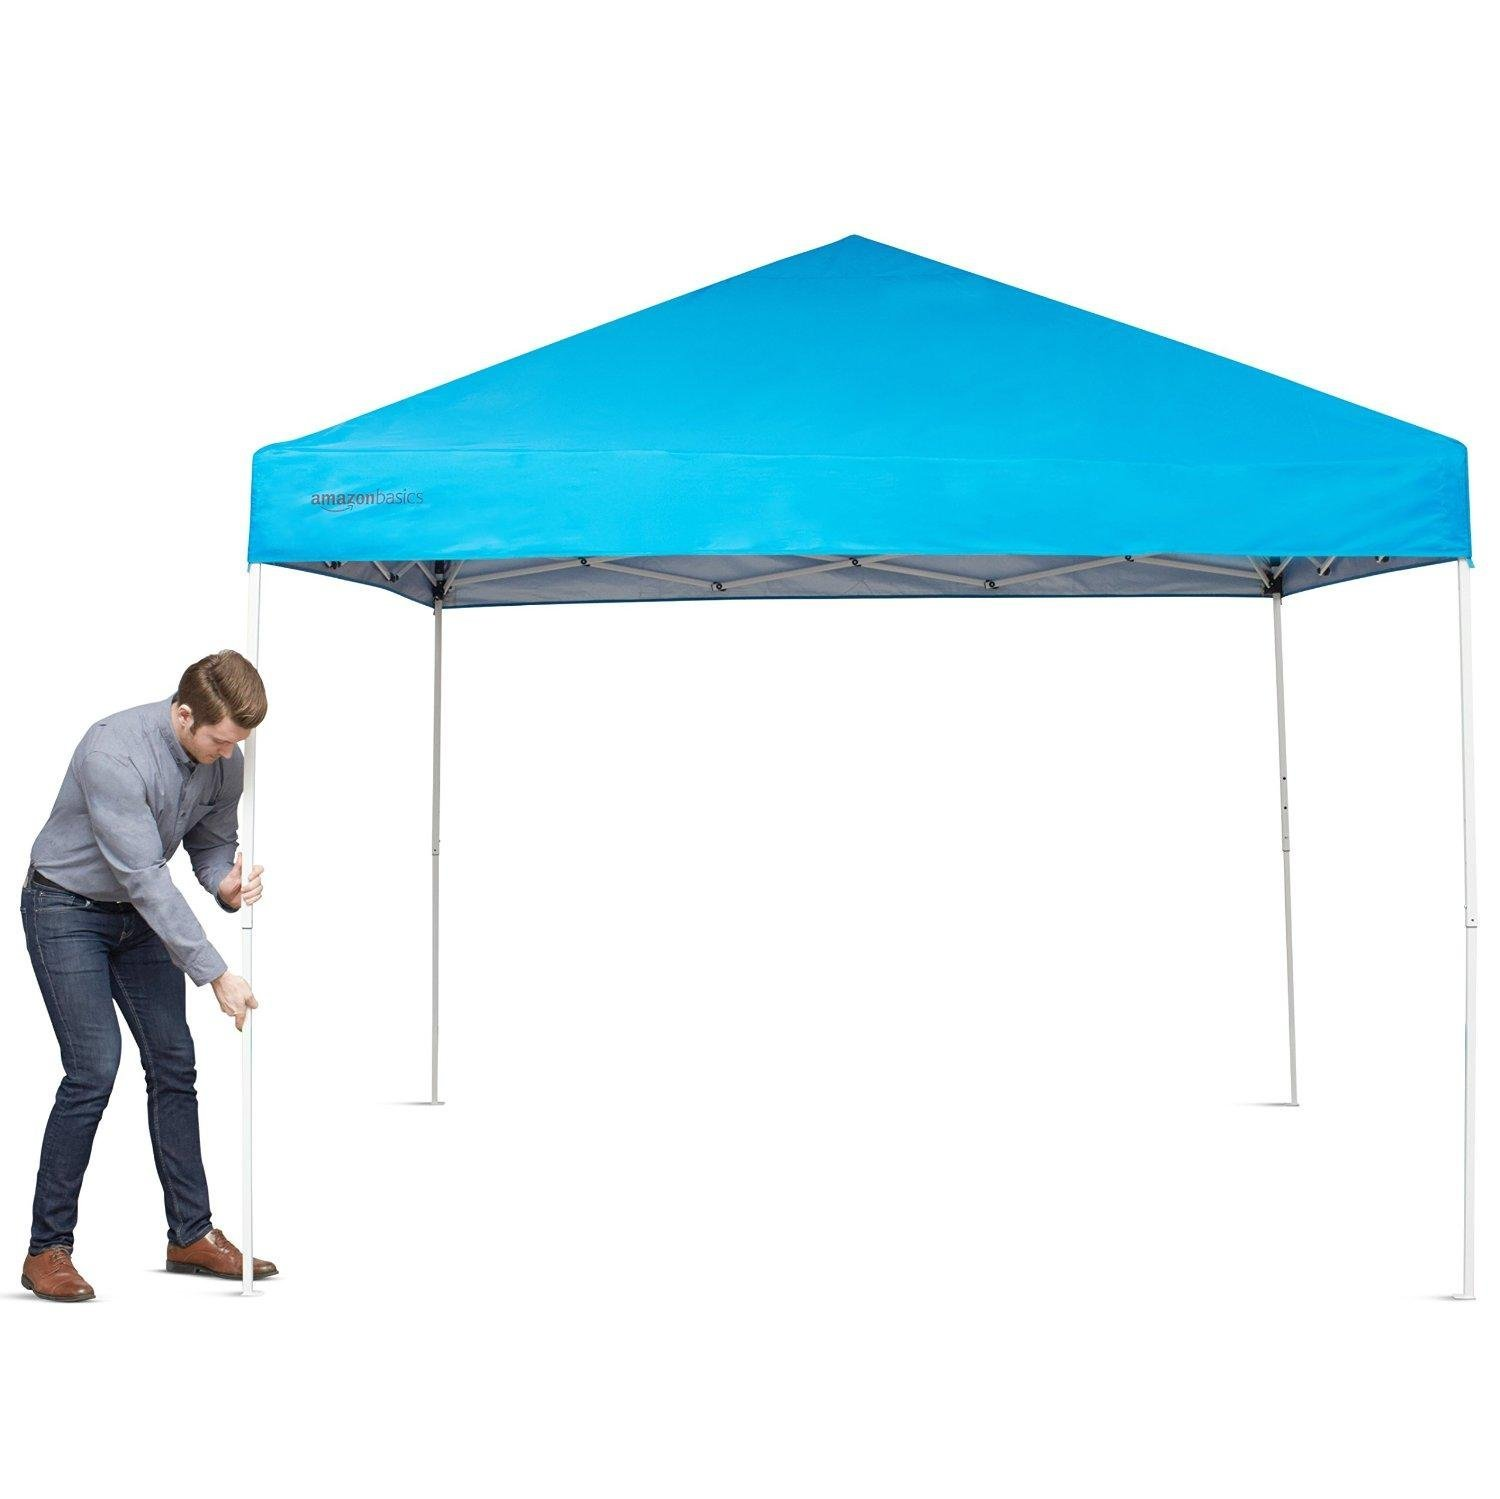 AmazonBasics Pop-Up Canopy Tent 10 x 10 ft  sc 1 st  Amazon.com : 10x10 canopy tents - memphite.com